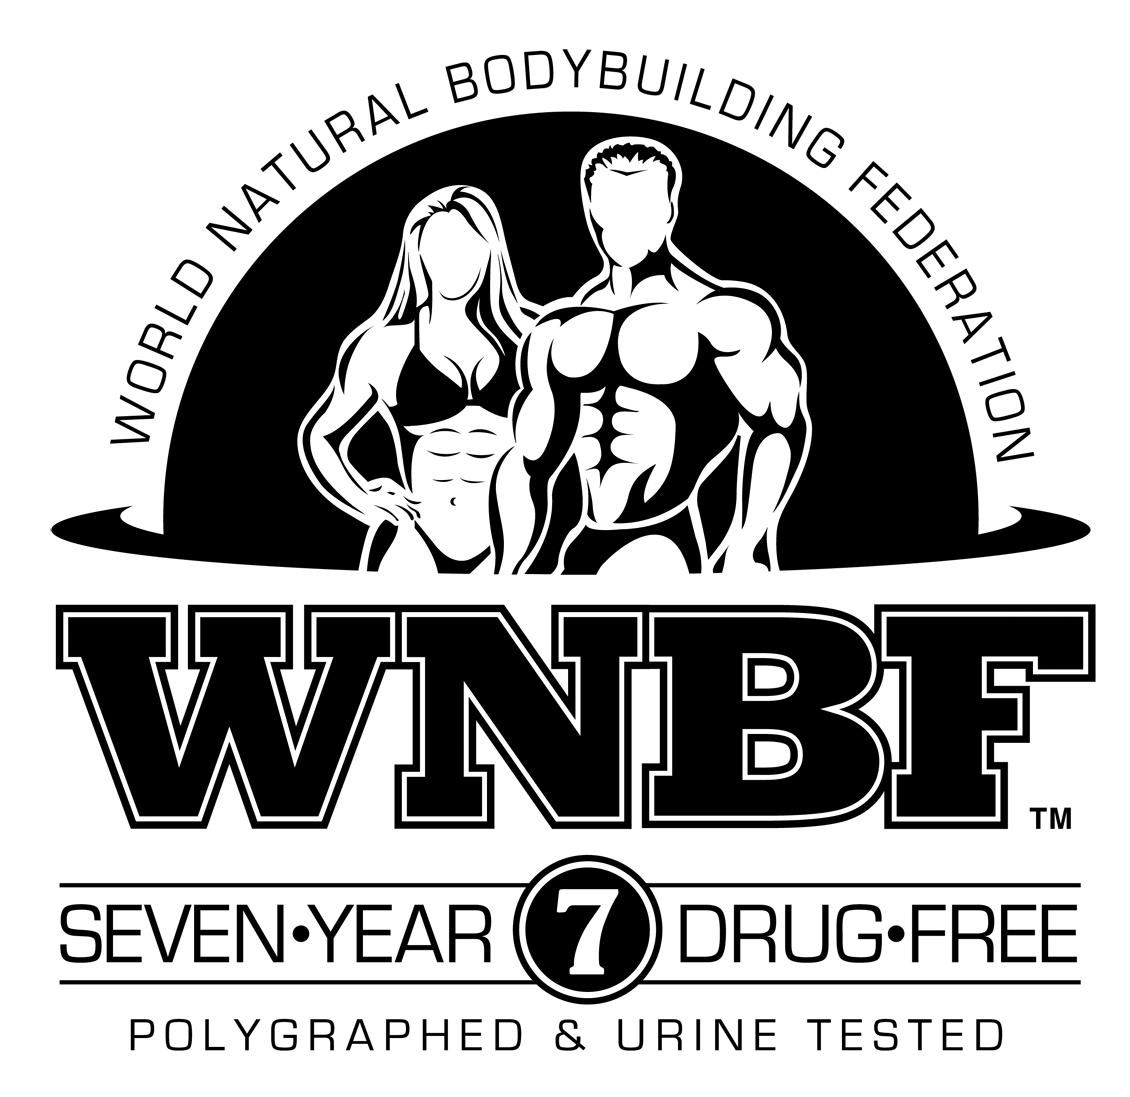 INBF Ocean State Classic 2018